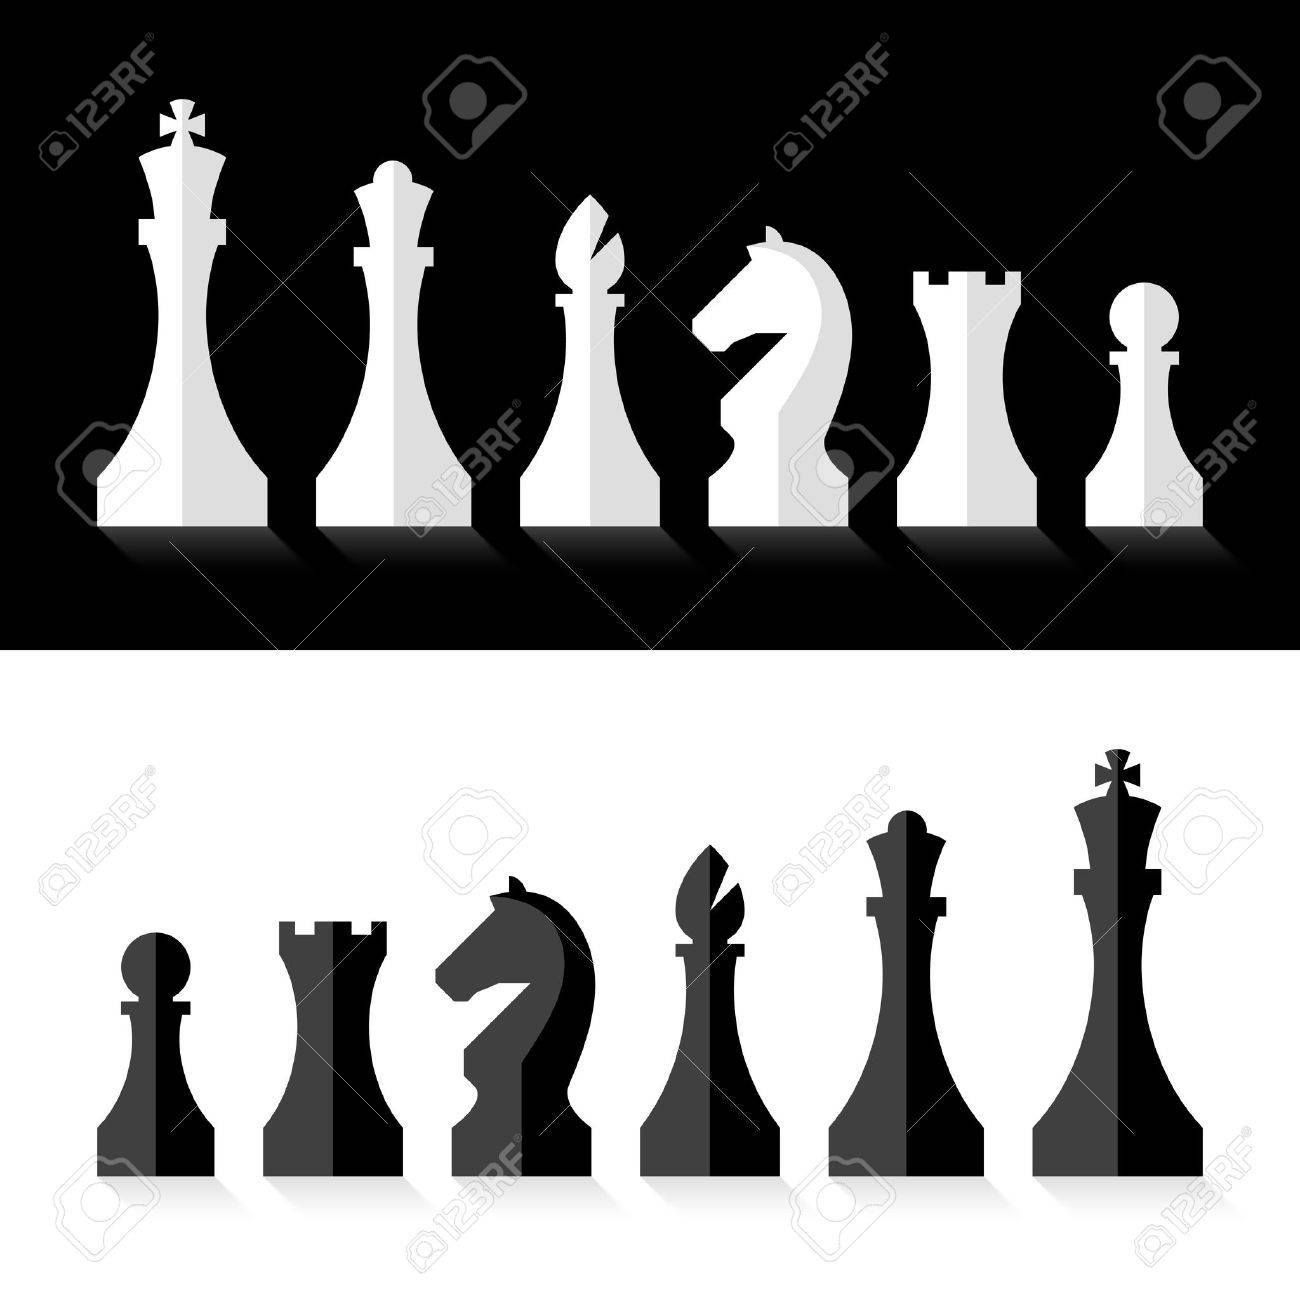 Black and white chess pieces flat design style.